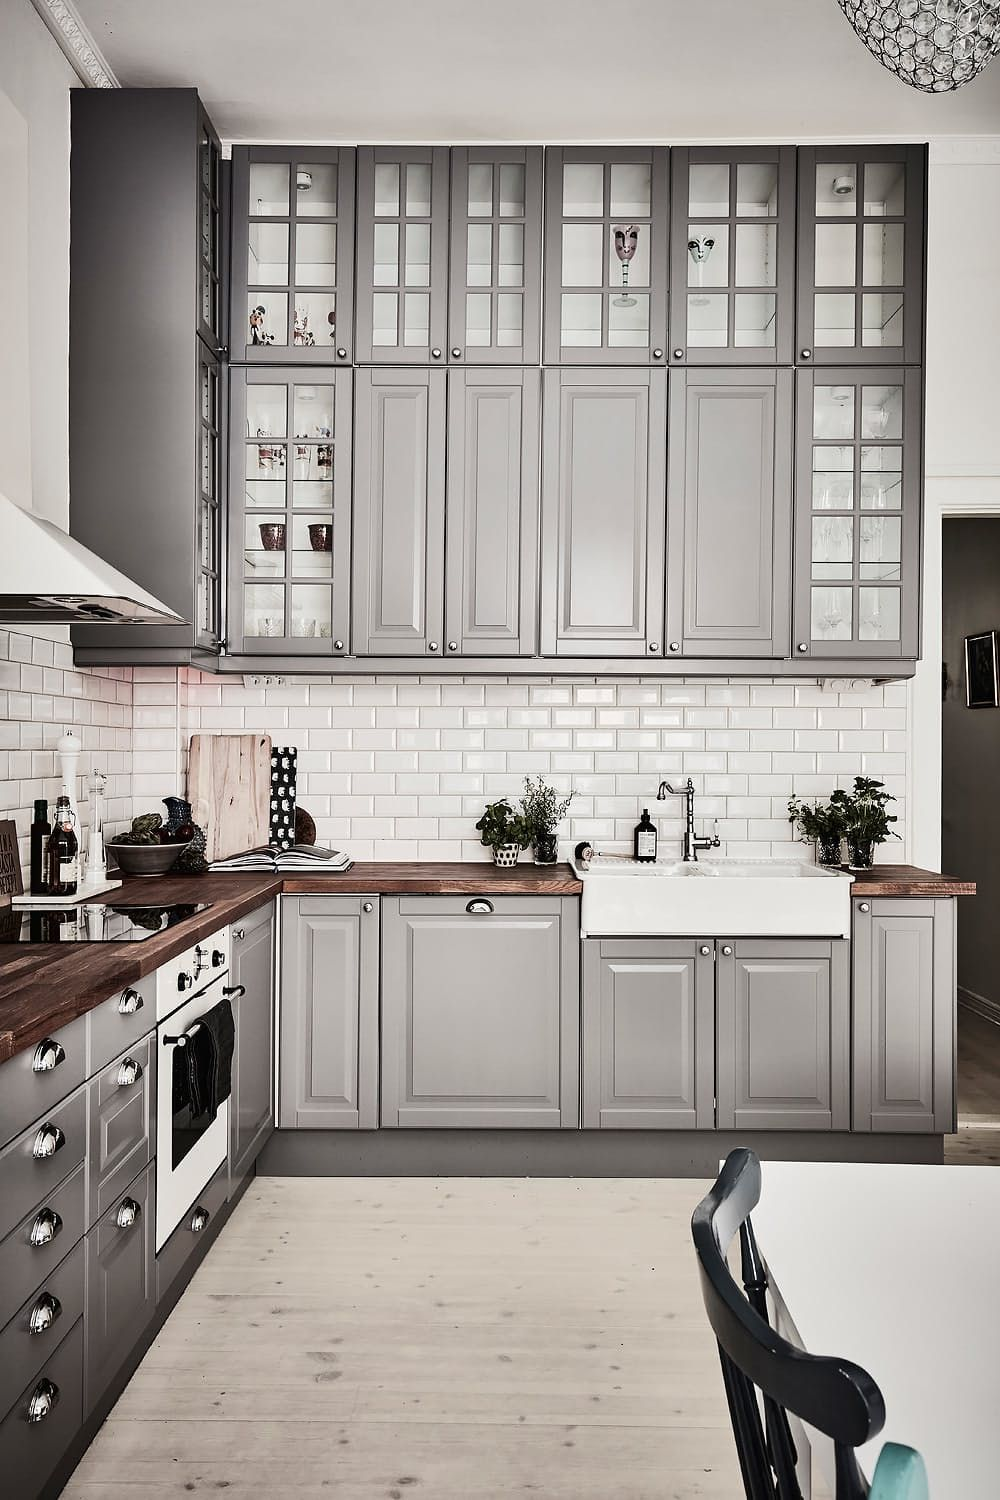 Inspiring Kitchens You Won\'t Believe are IKEA | Cabinet fronts ...